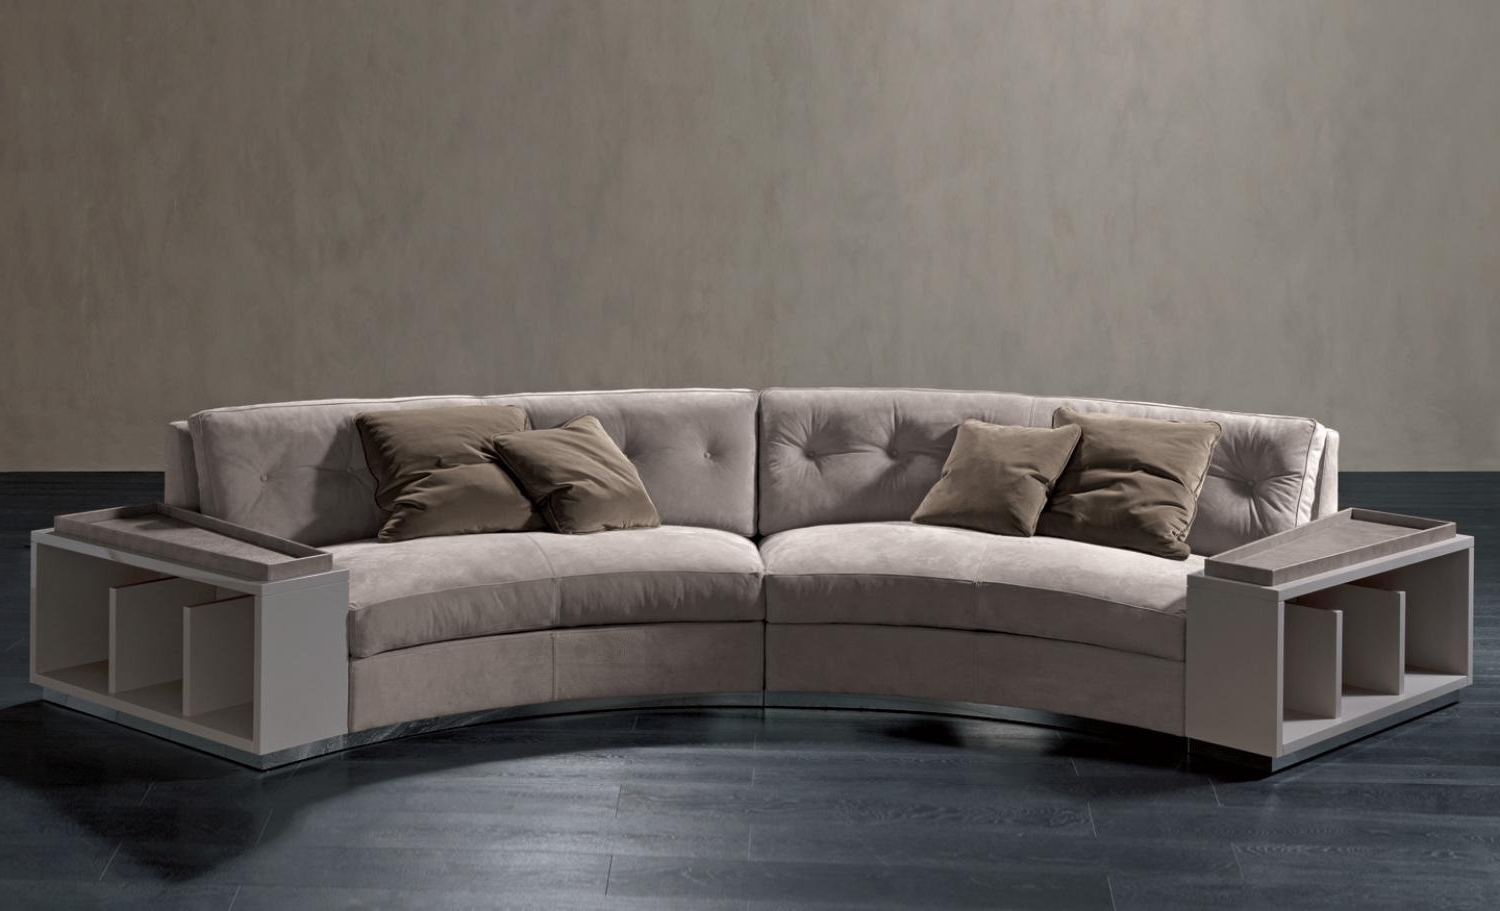 Most Recent Semicircular Sofas throughout Semi-Circular Sofa In Leather Circus, Rugiano - Luxury Furniture Mr